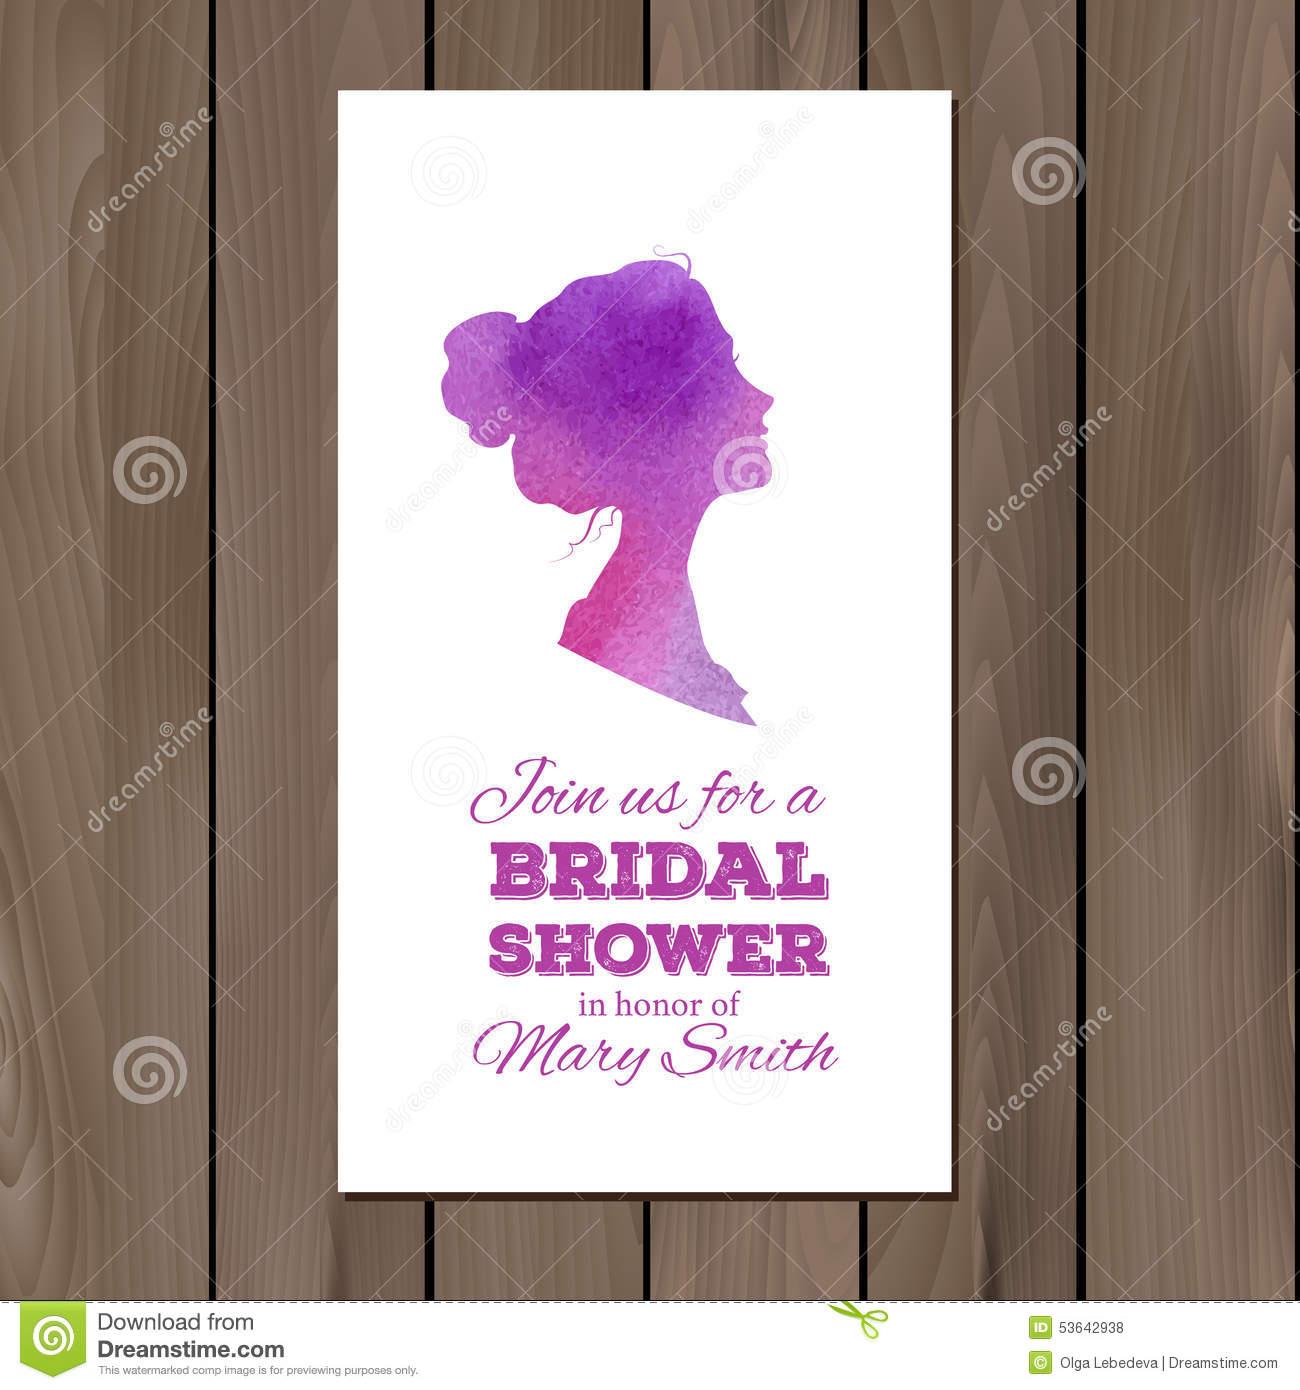 bridal shower invitation with watercolor elements